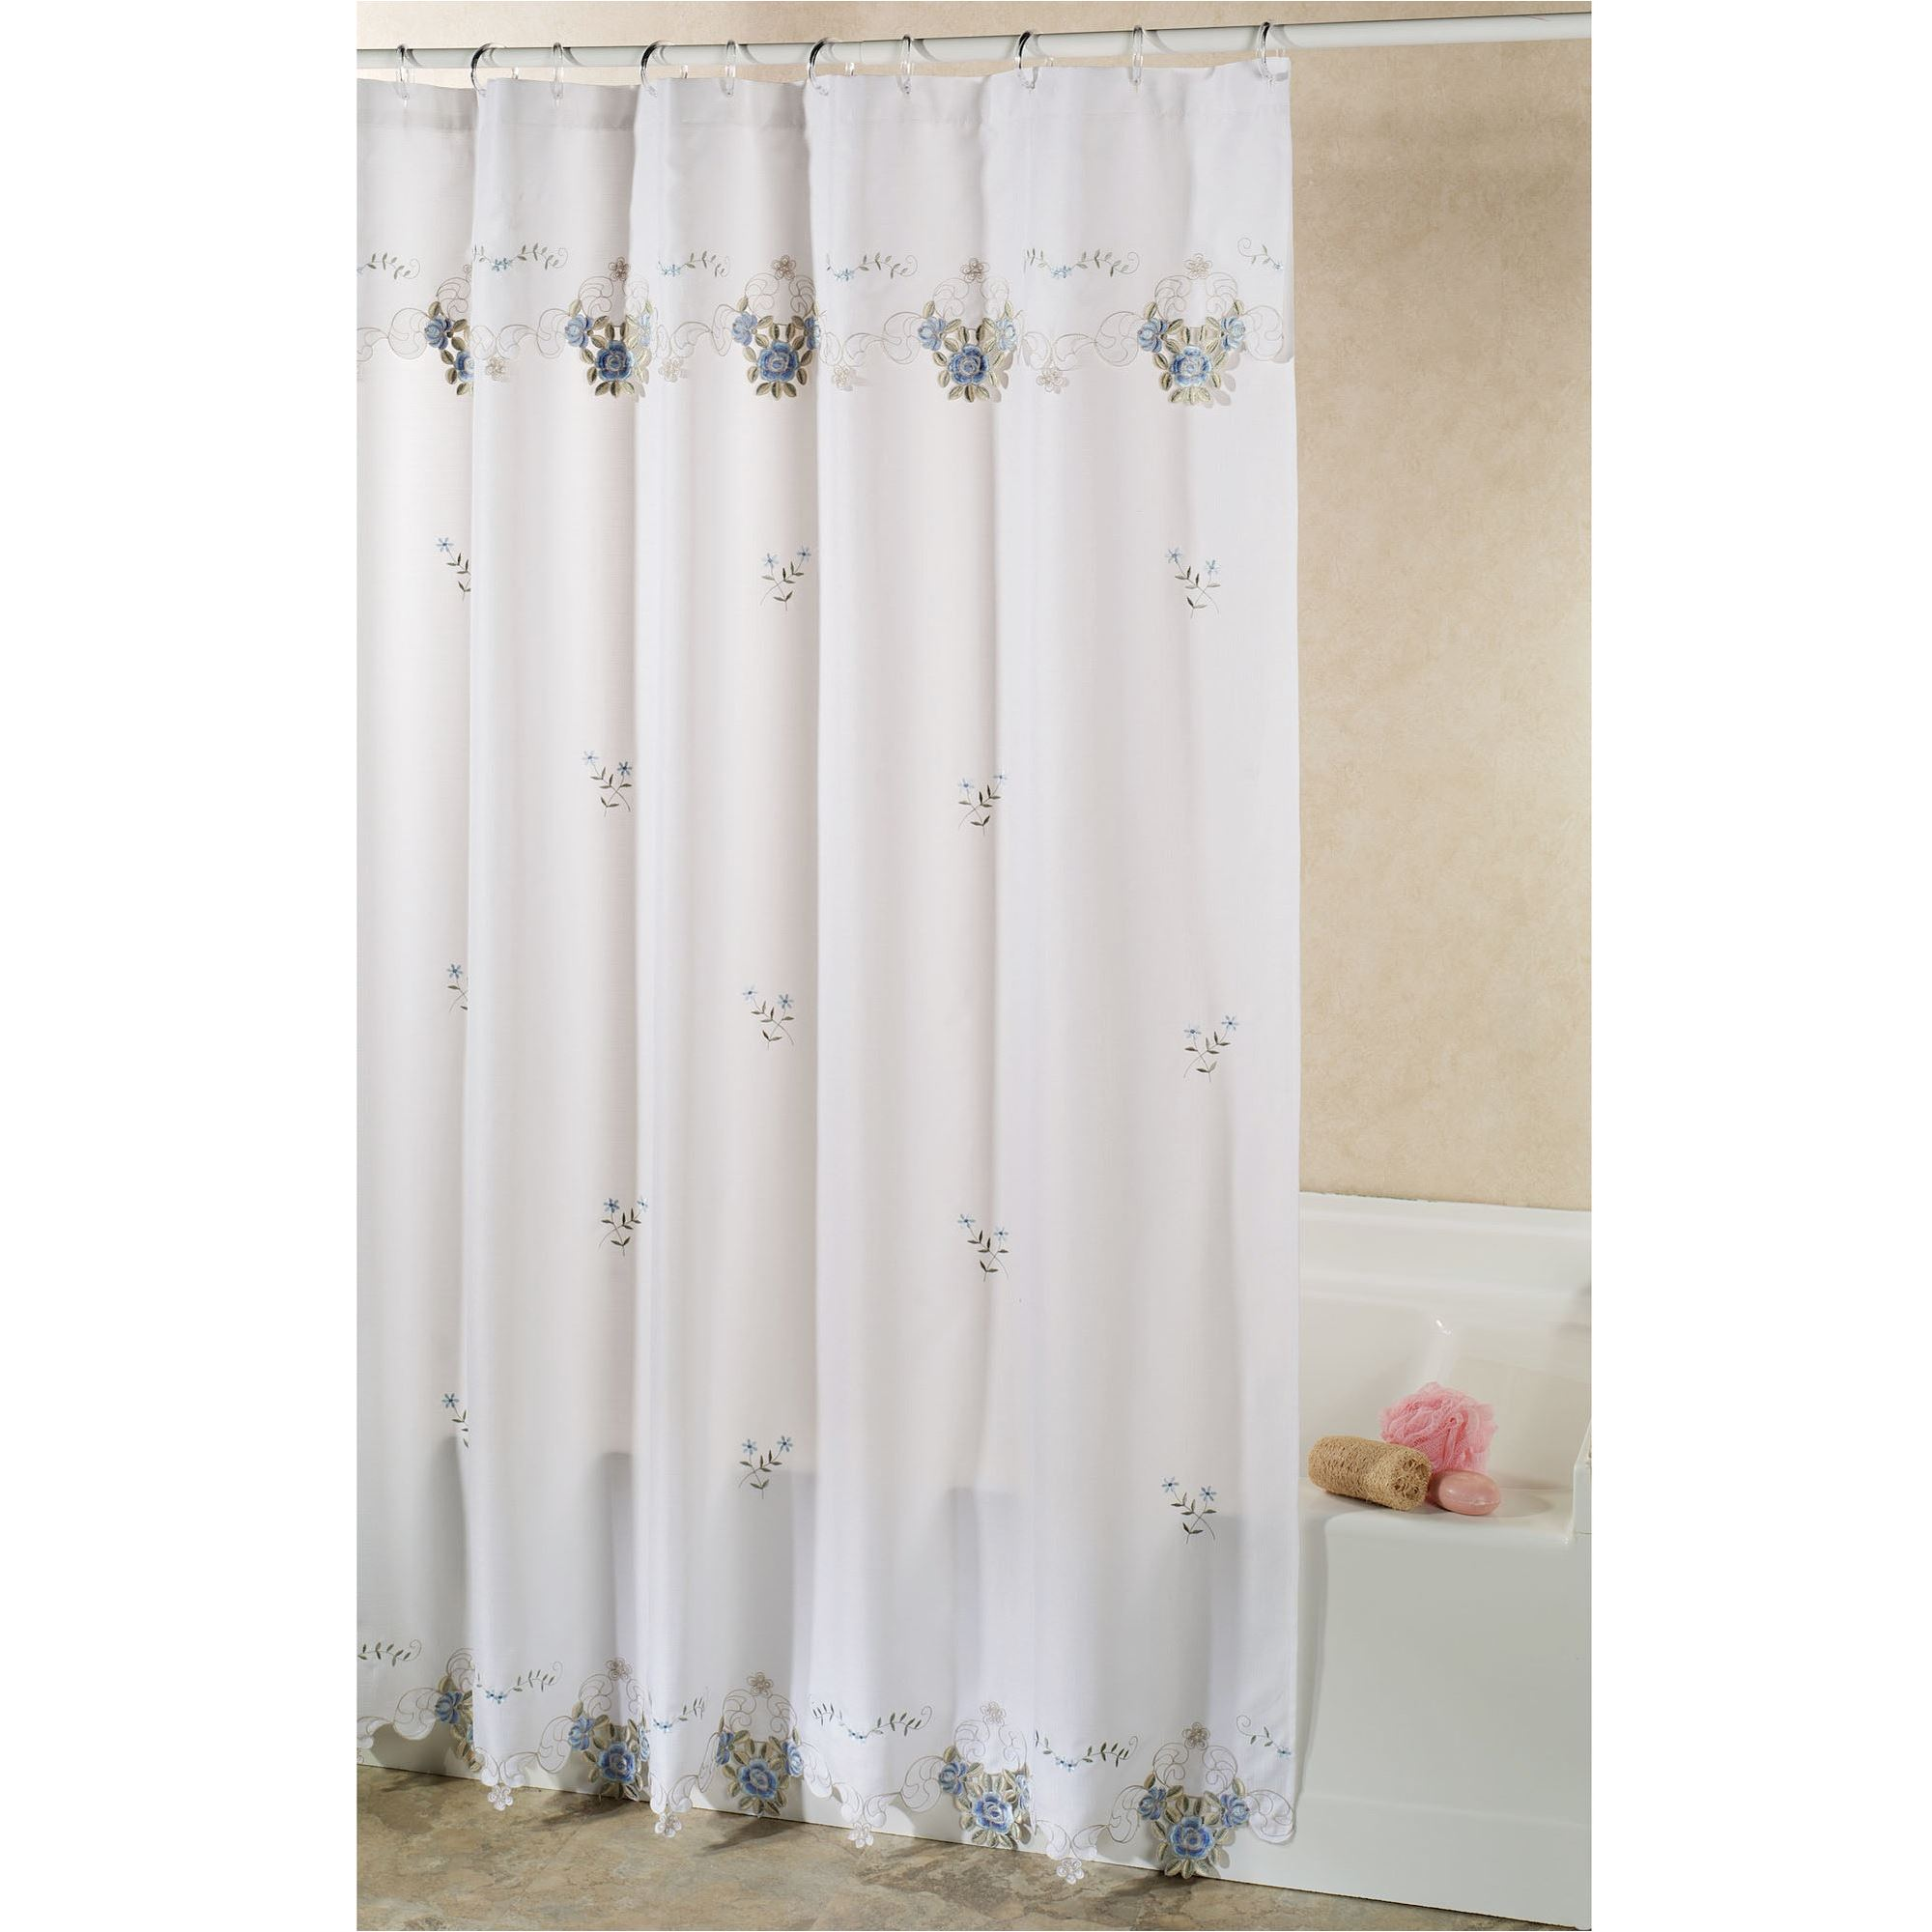 embroidered curtain red rose briar roses curtains p champagne floral x shower